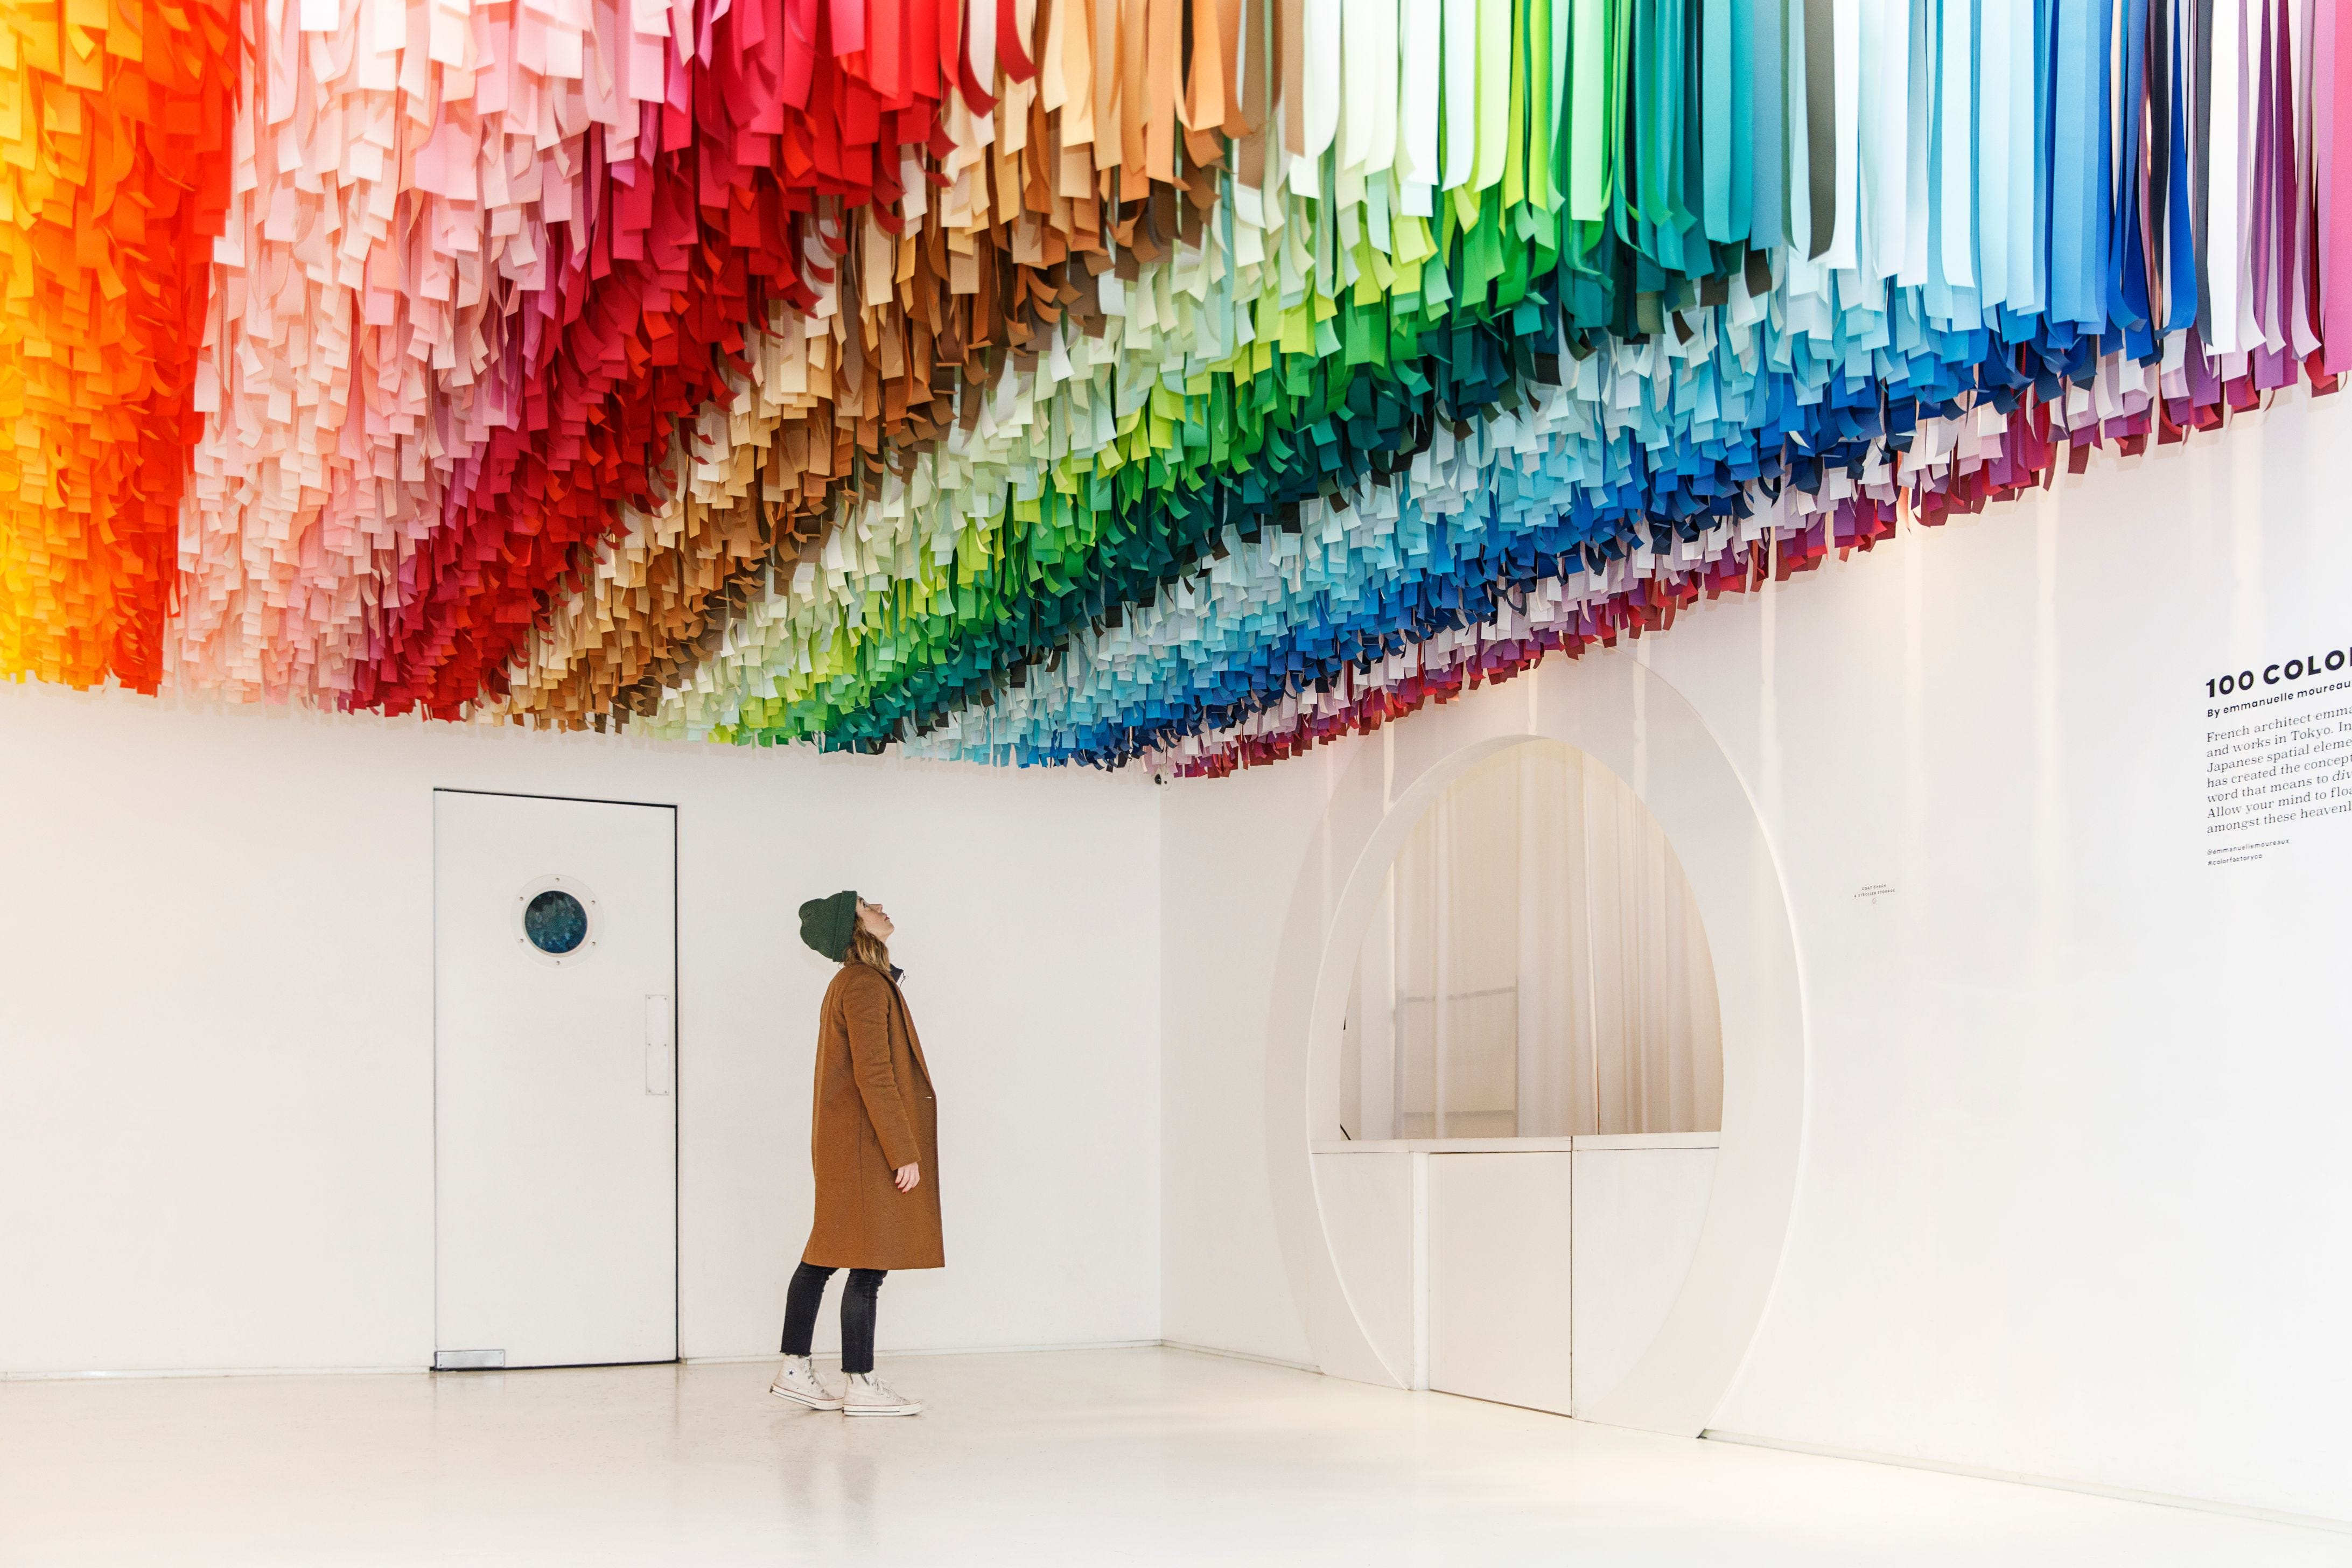 From Chihuly glass to the Museum of Ice Cream, you have to see this immersive art to believe it